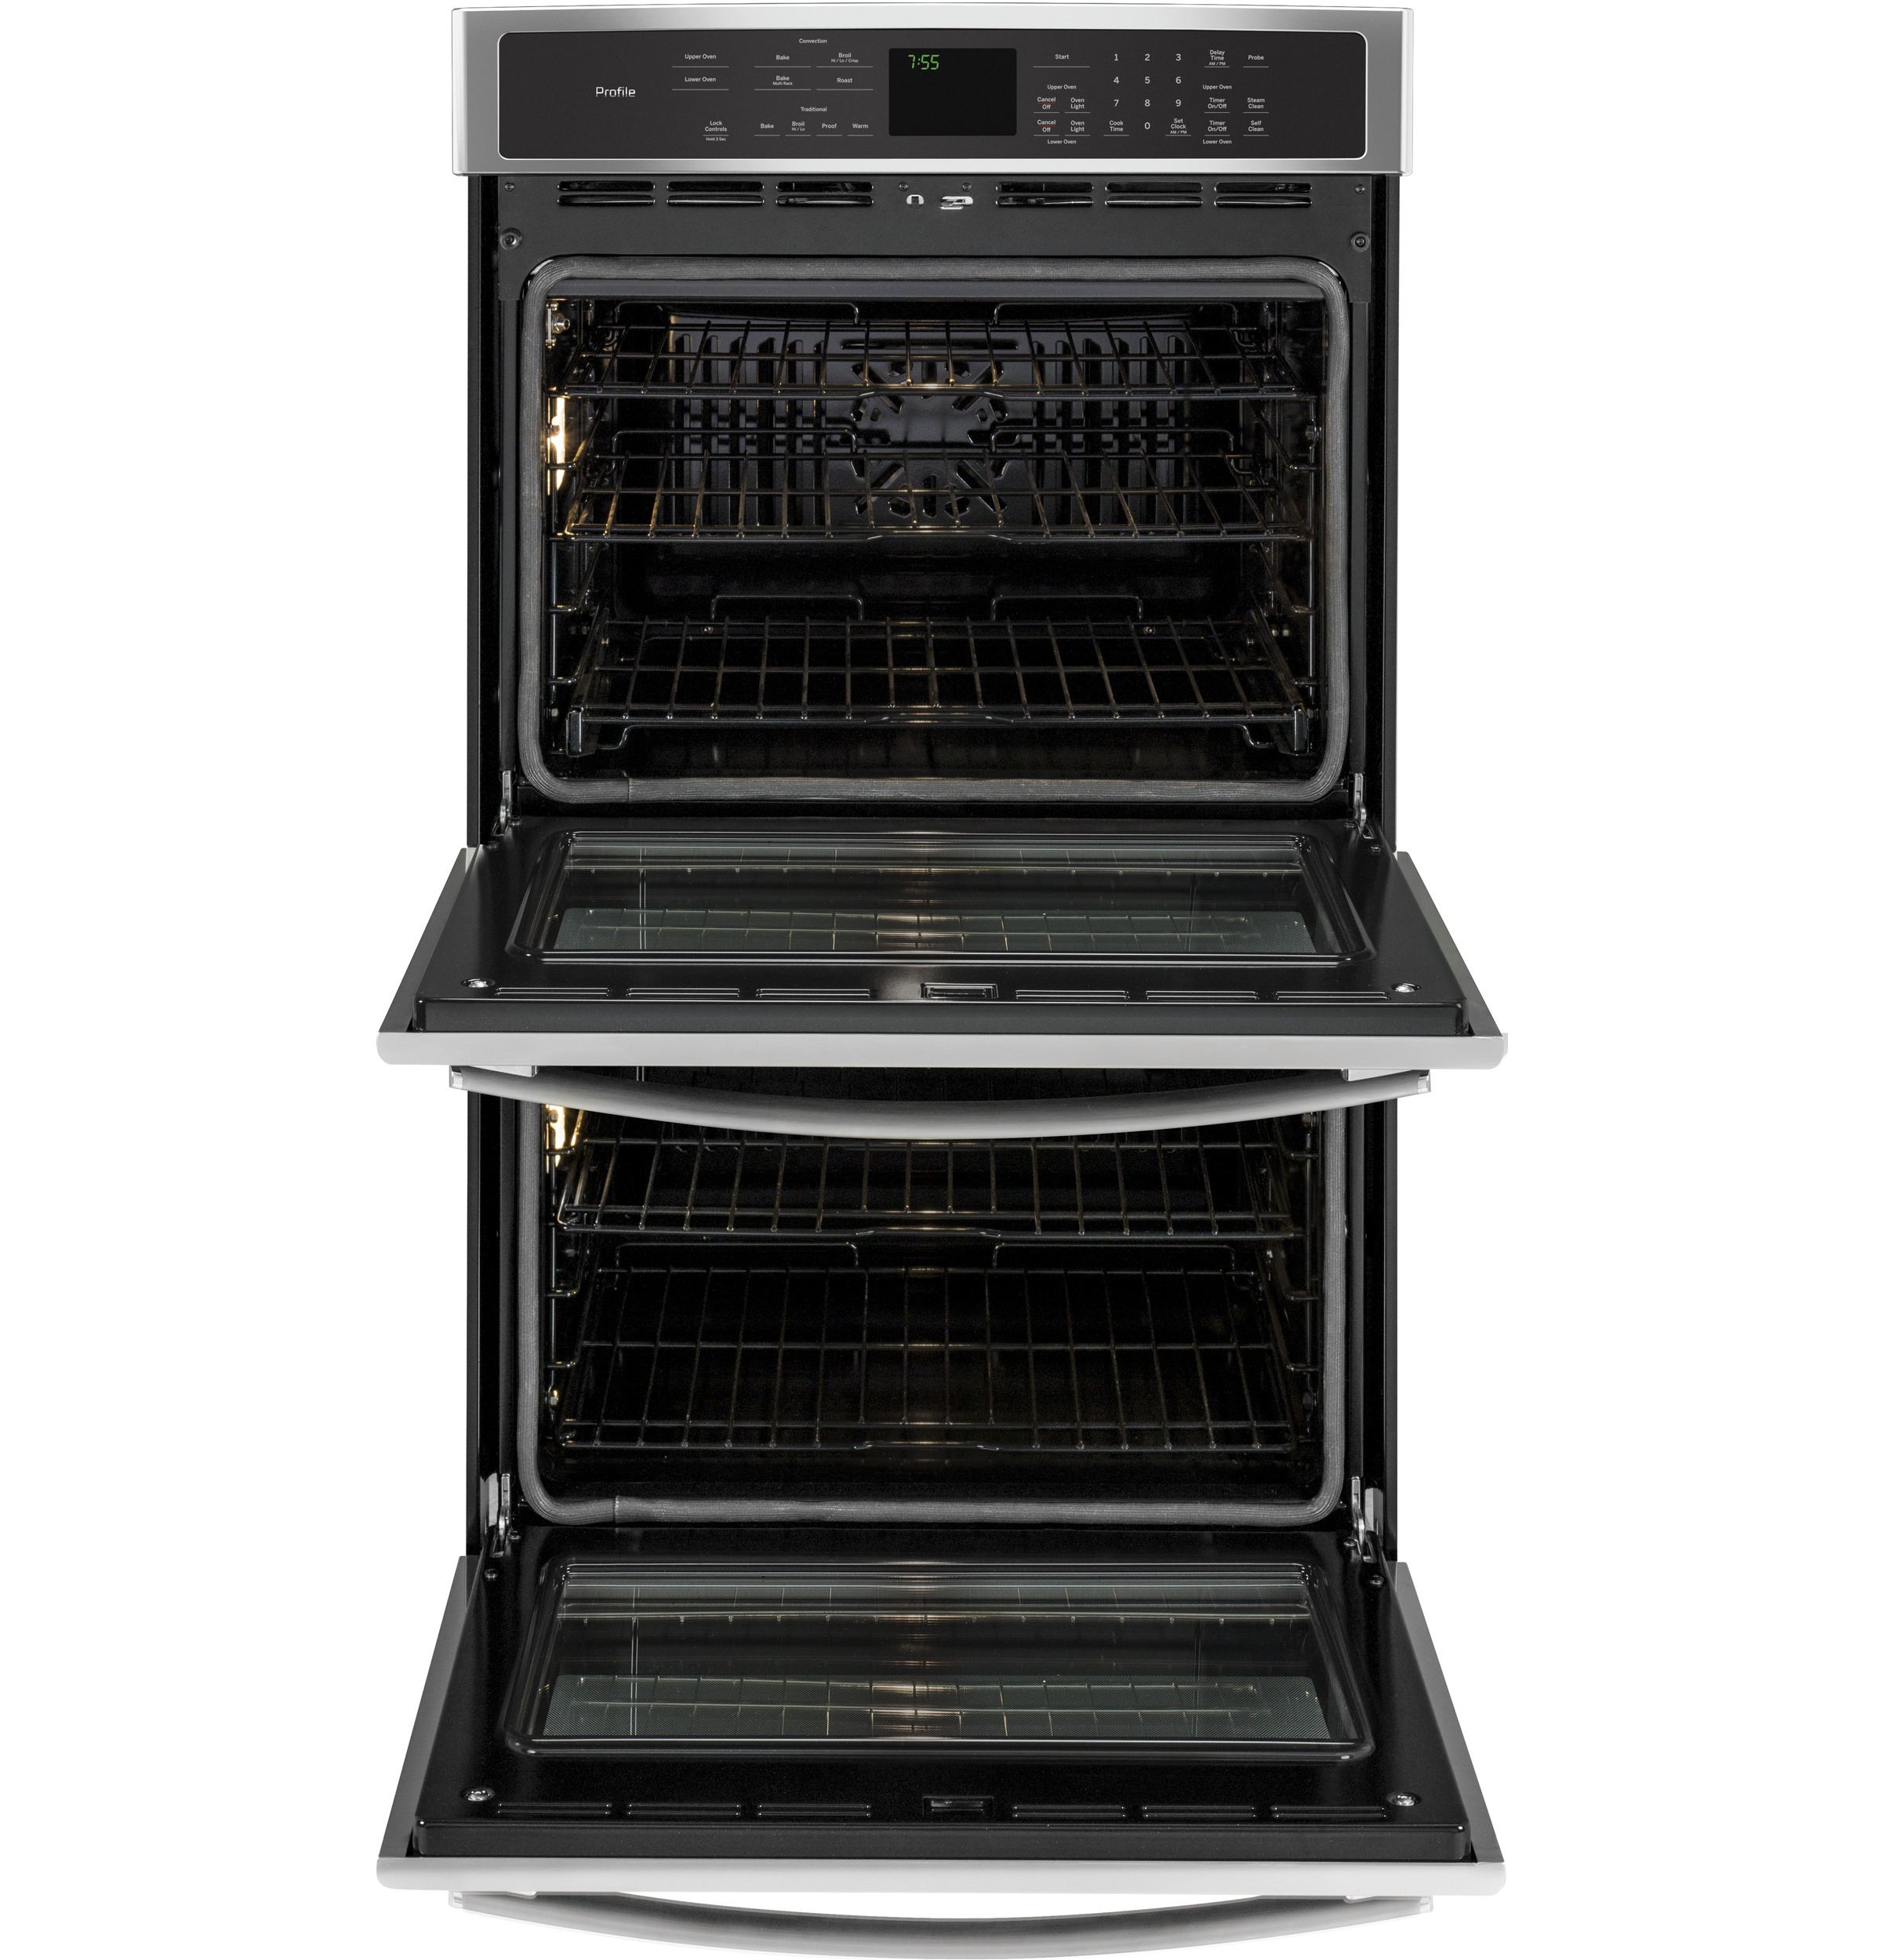 decker image sears shocking permalink l for toaster under black oven the cabinet and